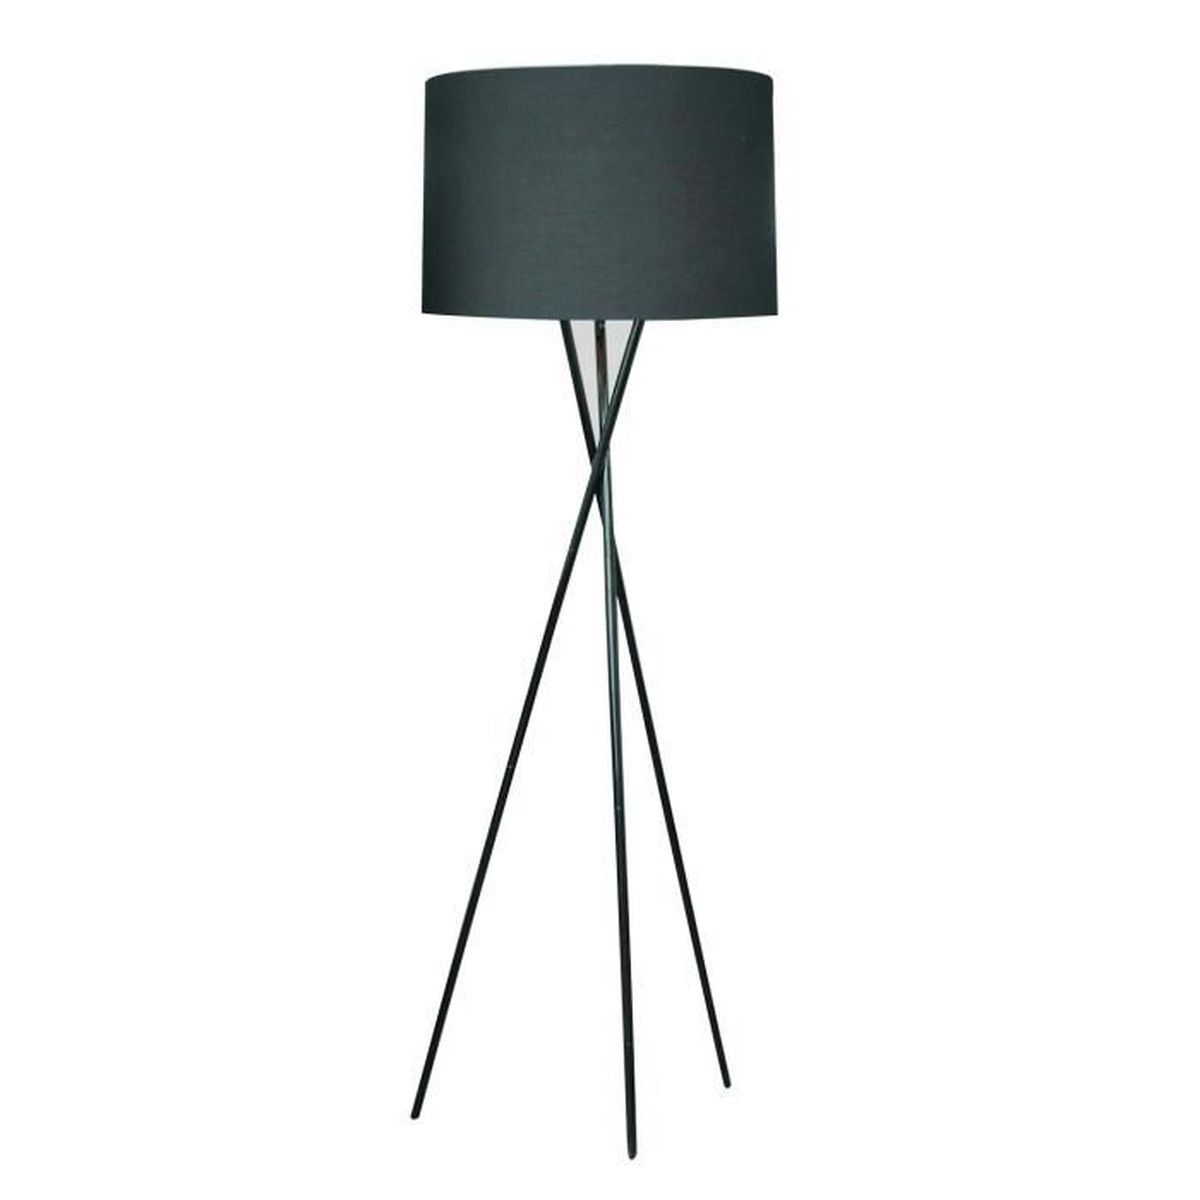 lampadaire achat vente lampadaire pas cher cdiscount. Black Bedroom Furniture Sets. Home Design Ideas